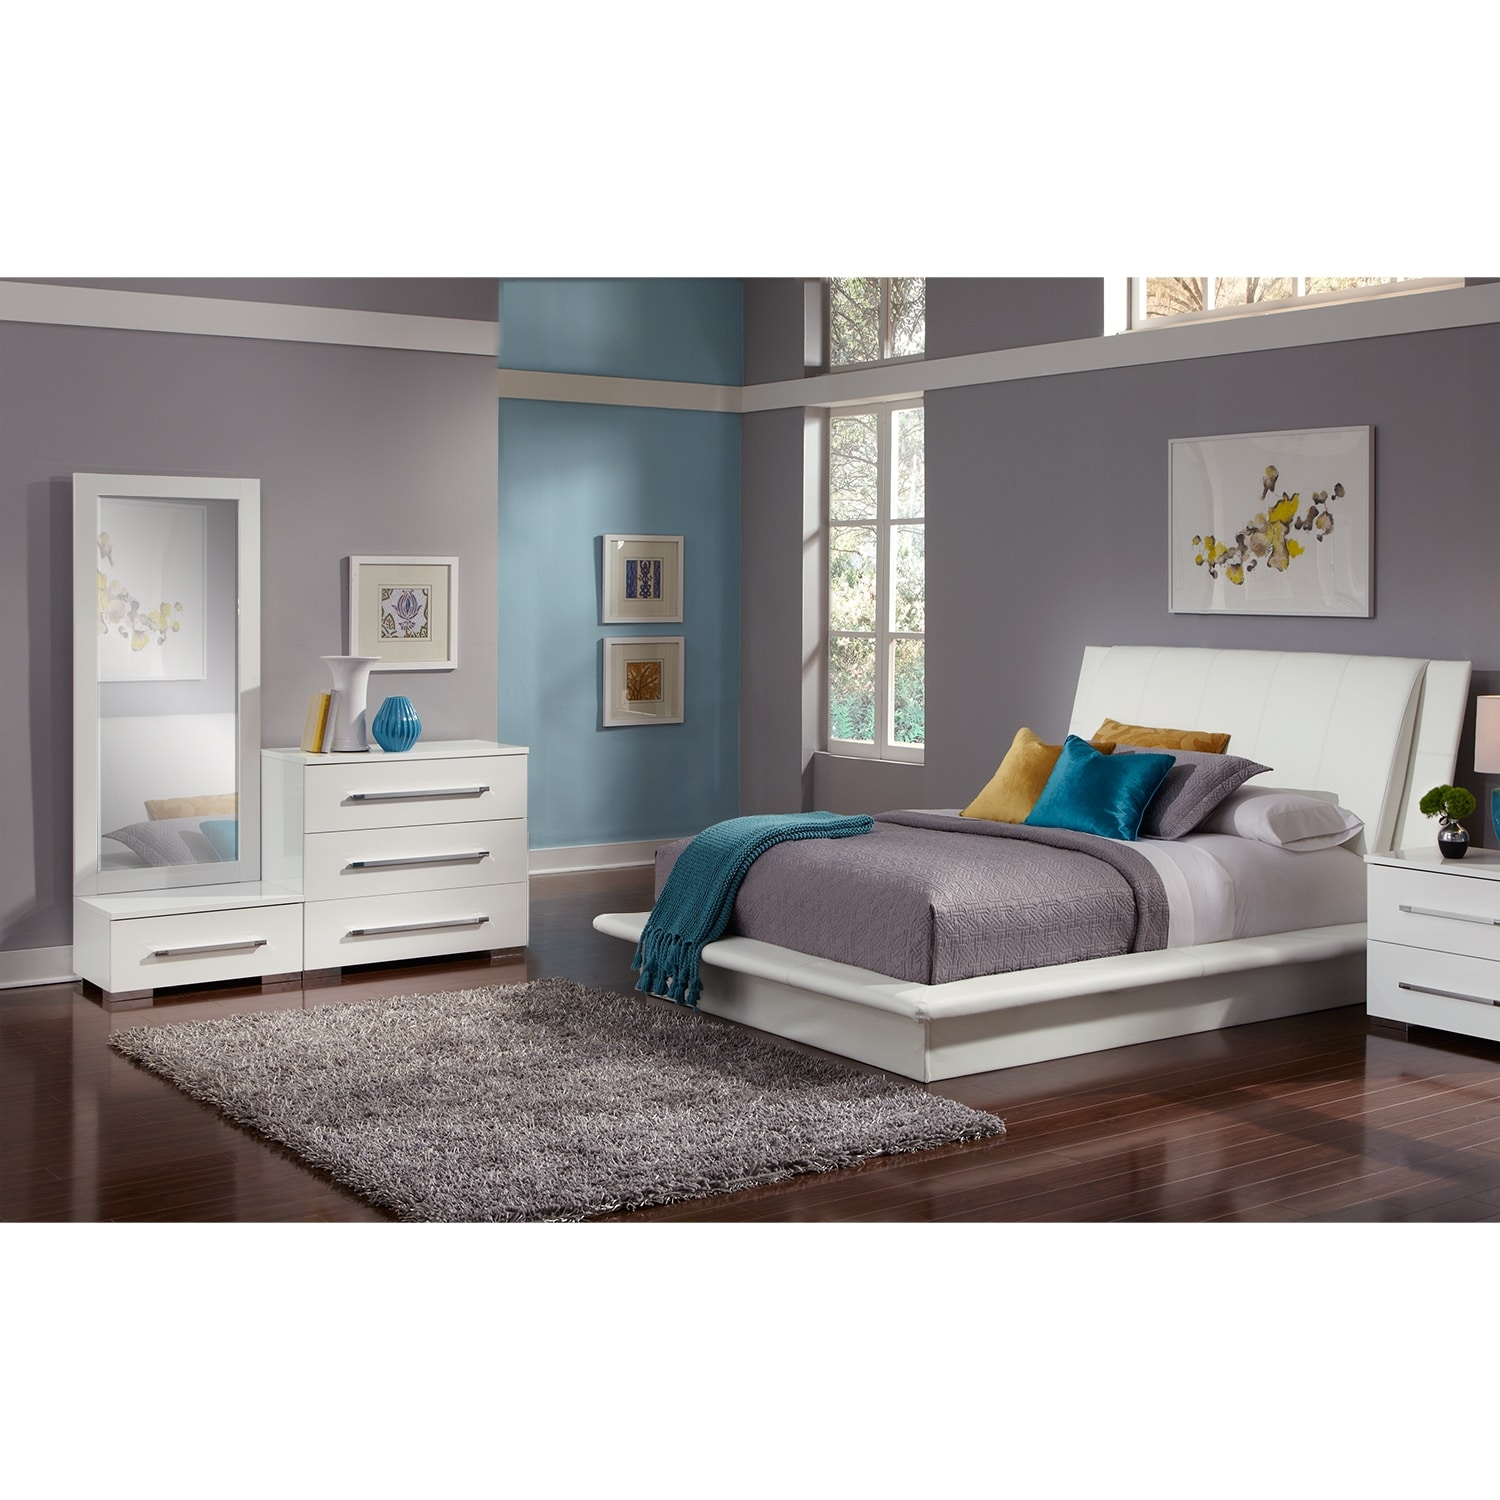 Bedroom Furniture - Dimora 5-Piece Queen Upholstered Bedroom Set - White